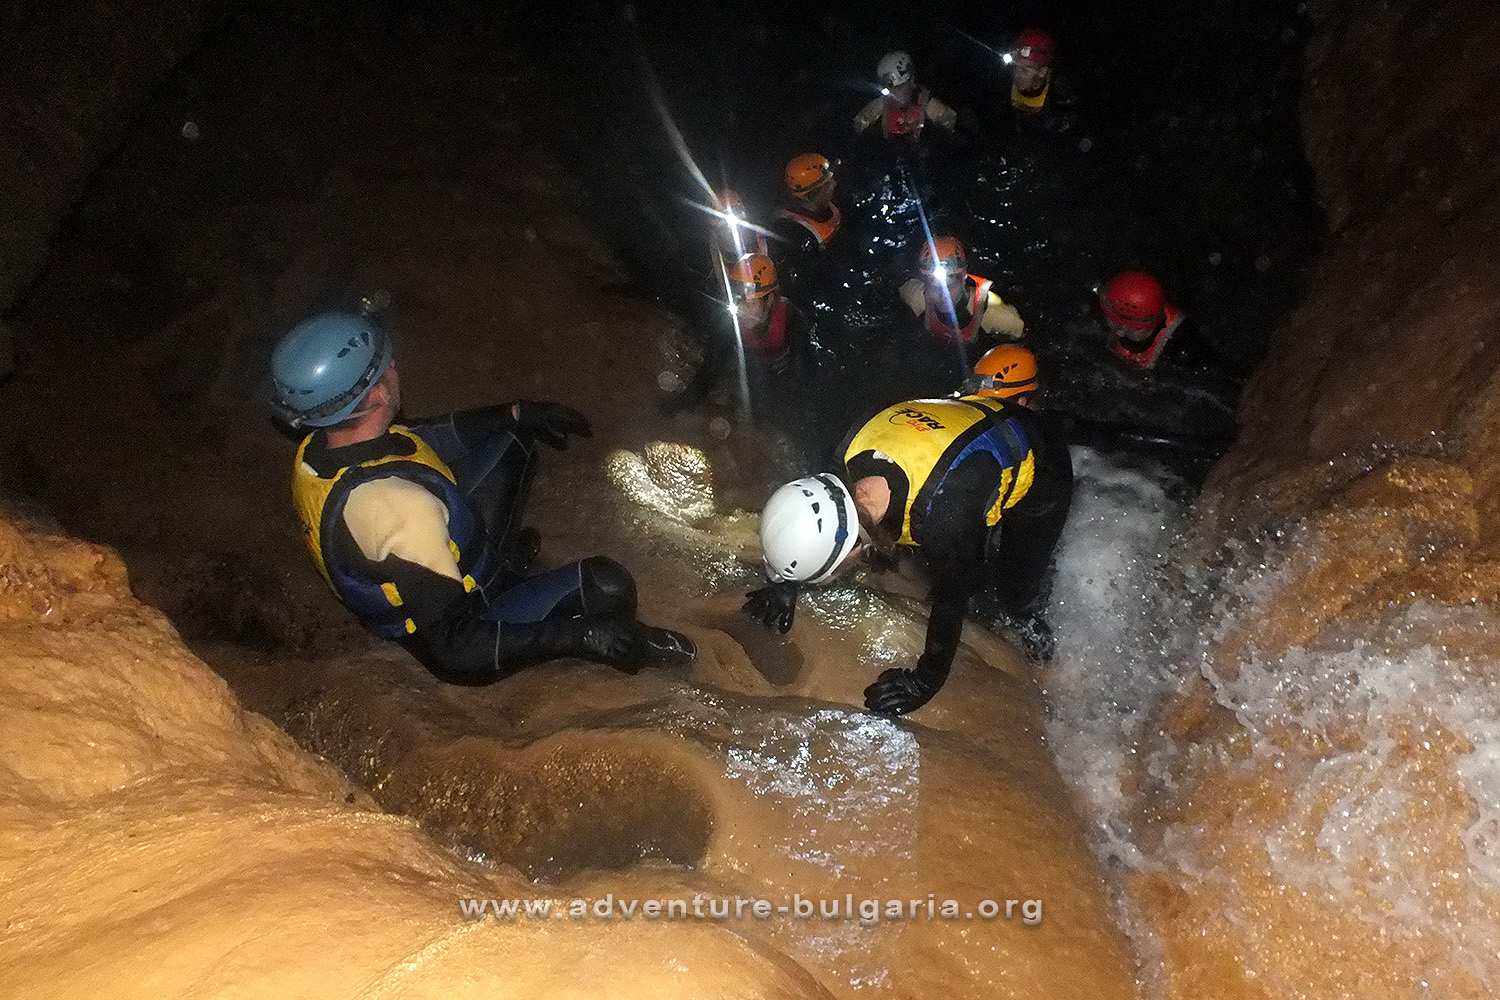 Canyoning and Caving in Bulgaria